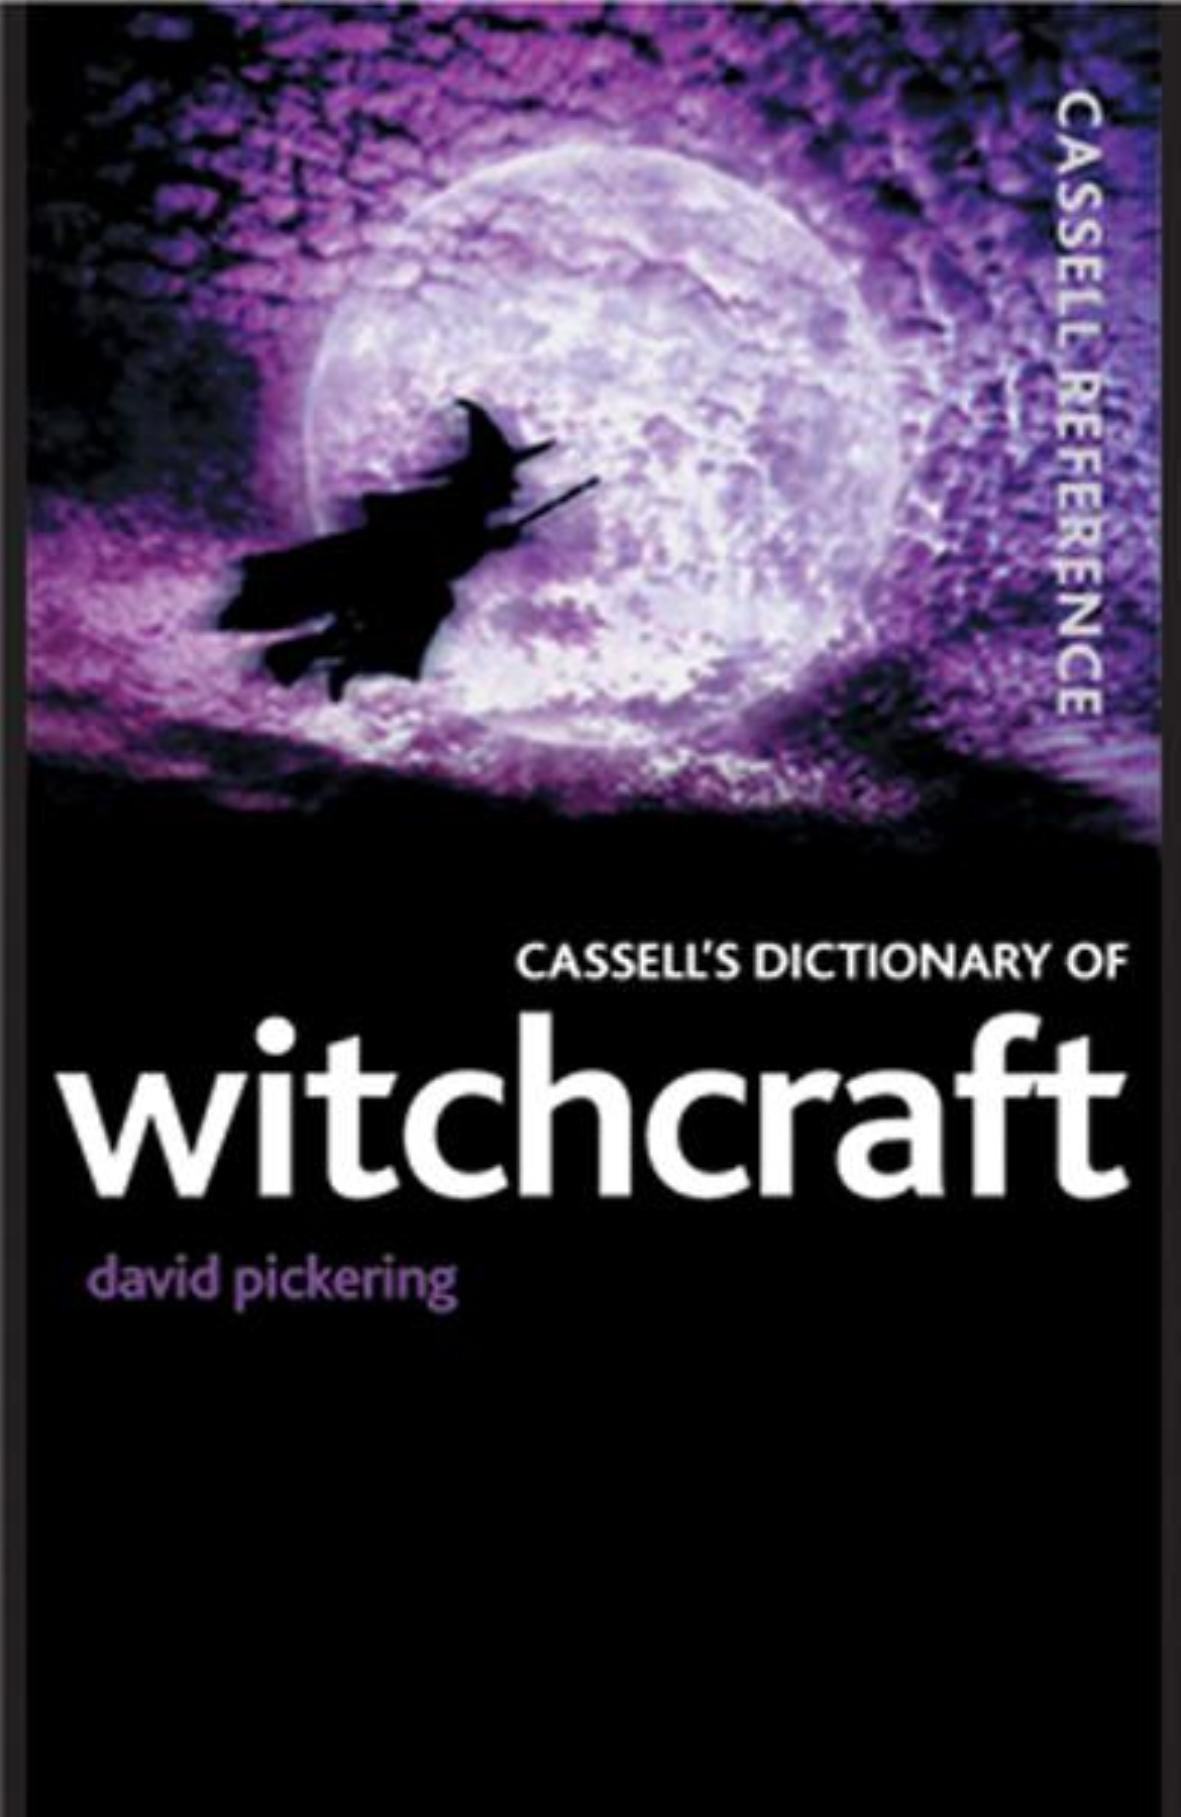 Download Cassell's Dictionary of Witchcraft (Cassell Reference) ebook